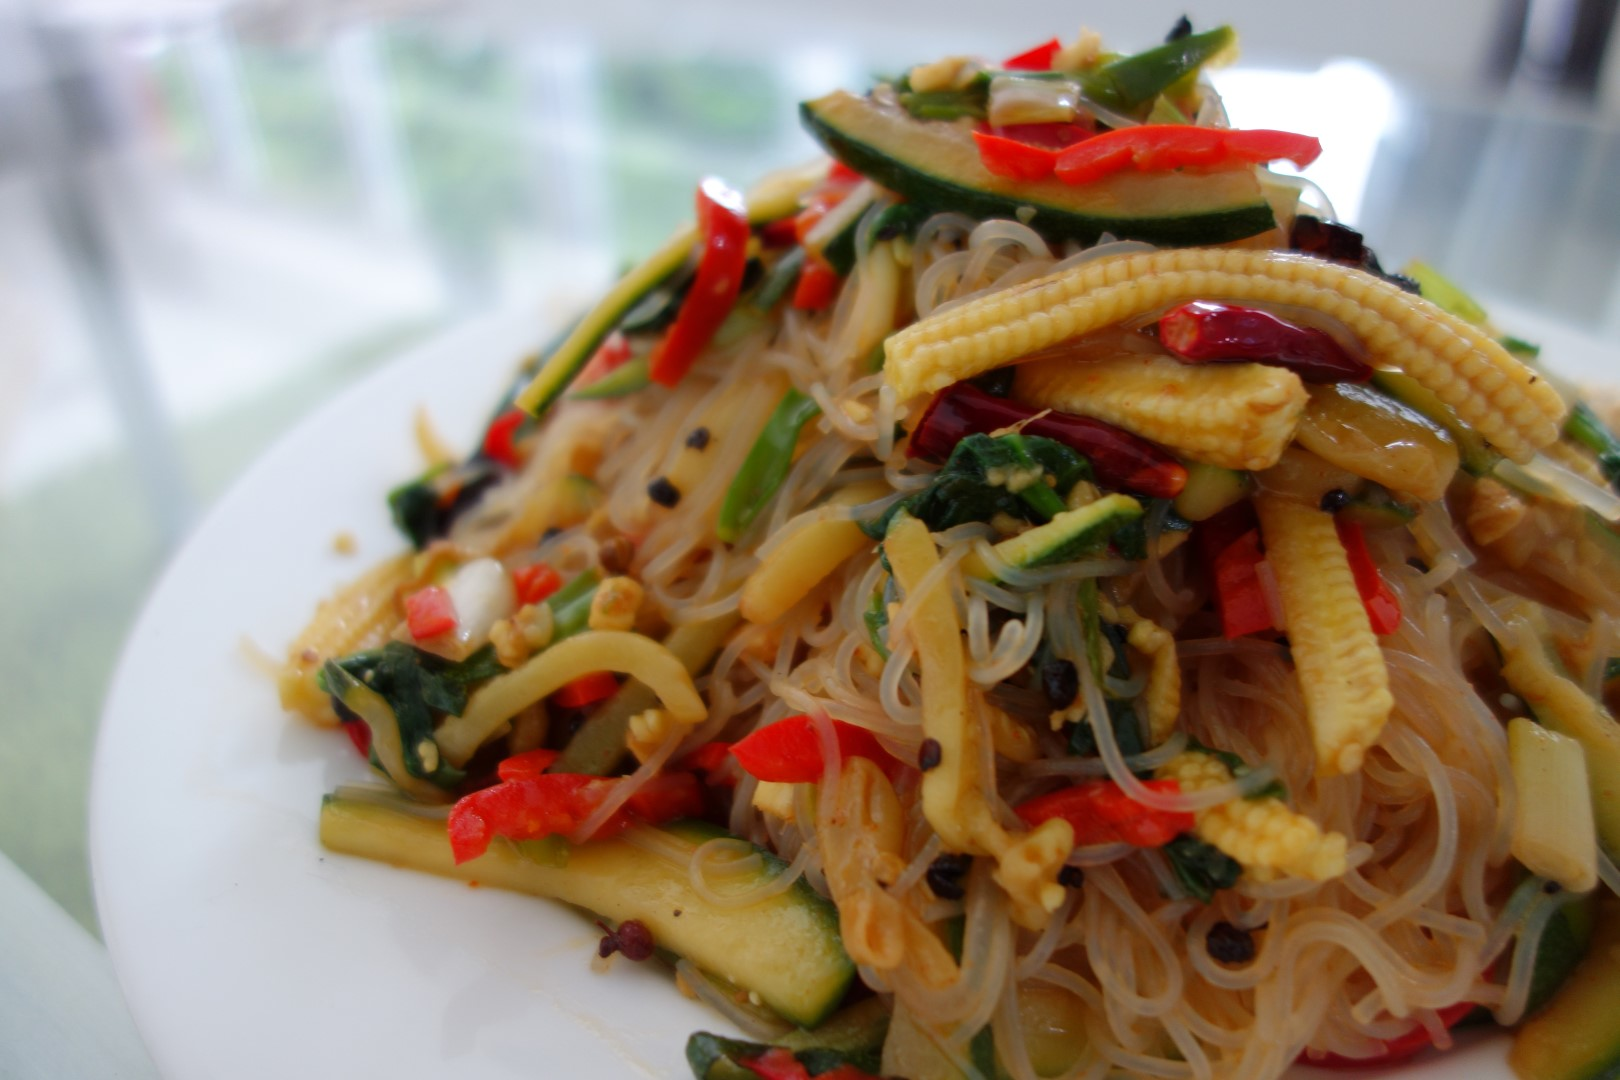 or glass noodles – since I